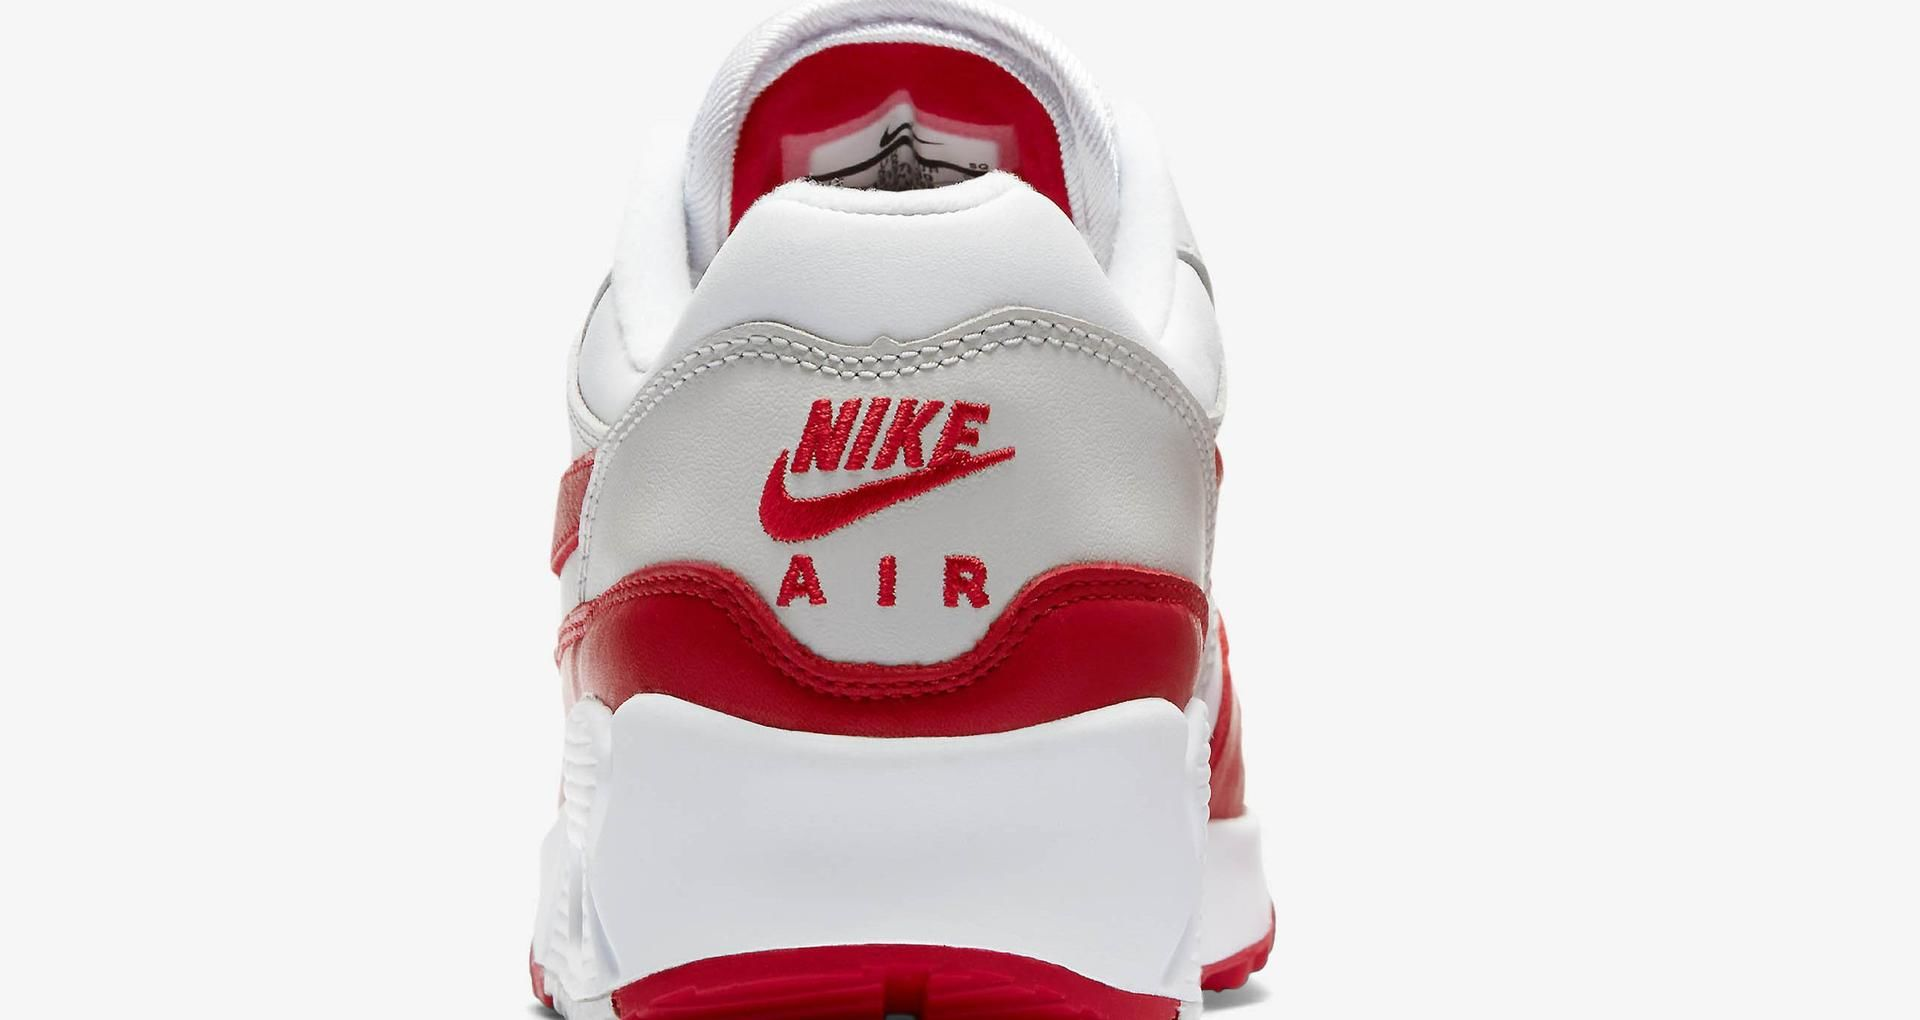 09-nike-womens-air-max-90-1-white-red-aq1273-100